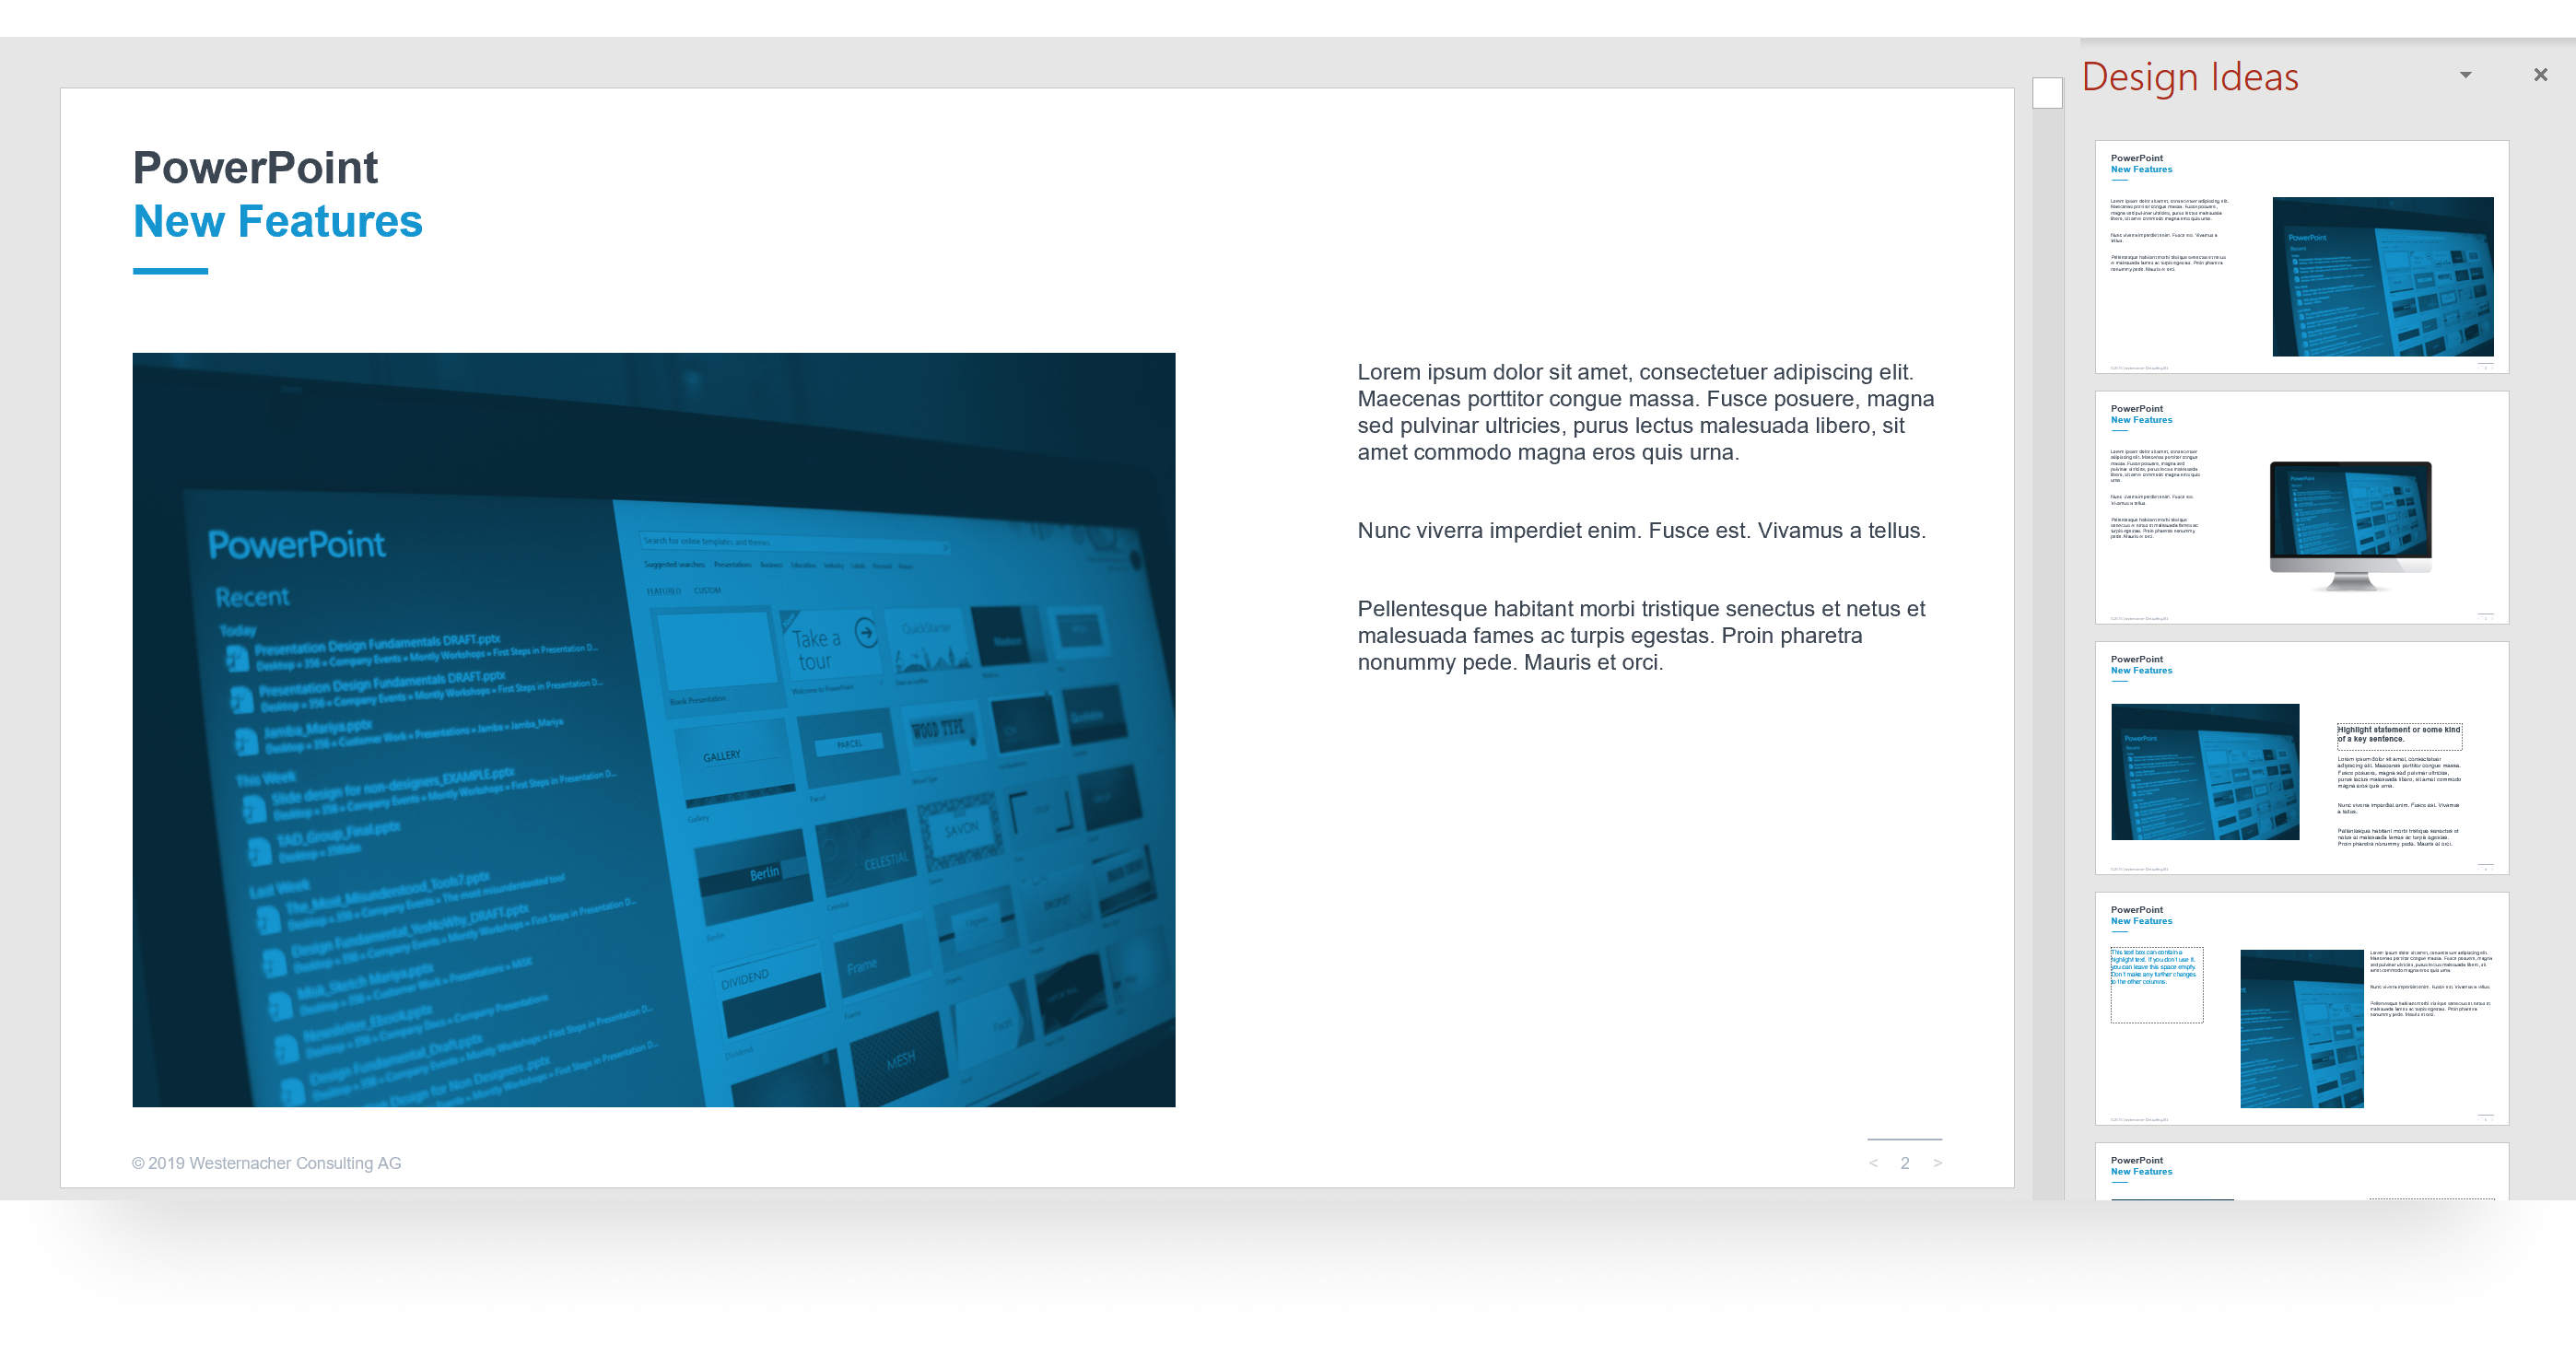 PowerPoint Designer Company-Branded Templates